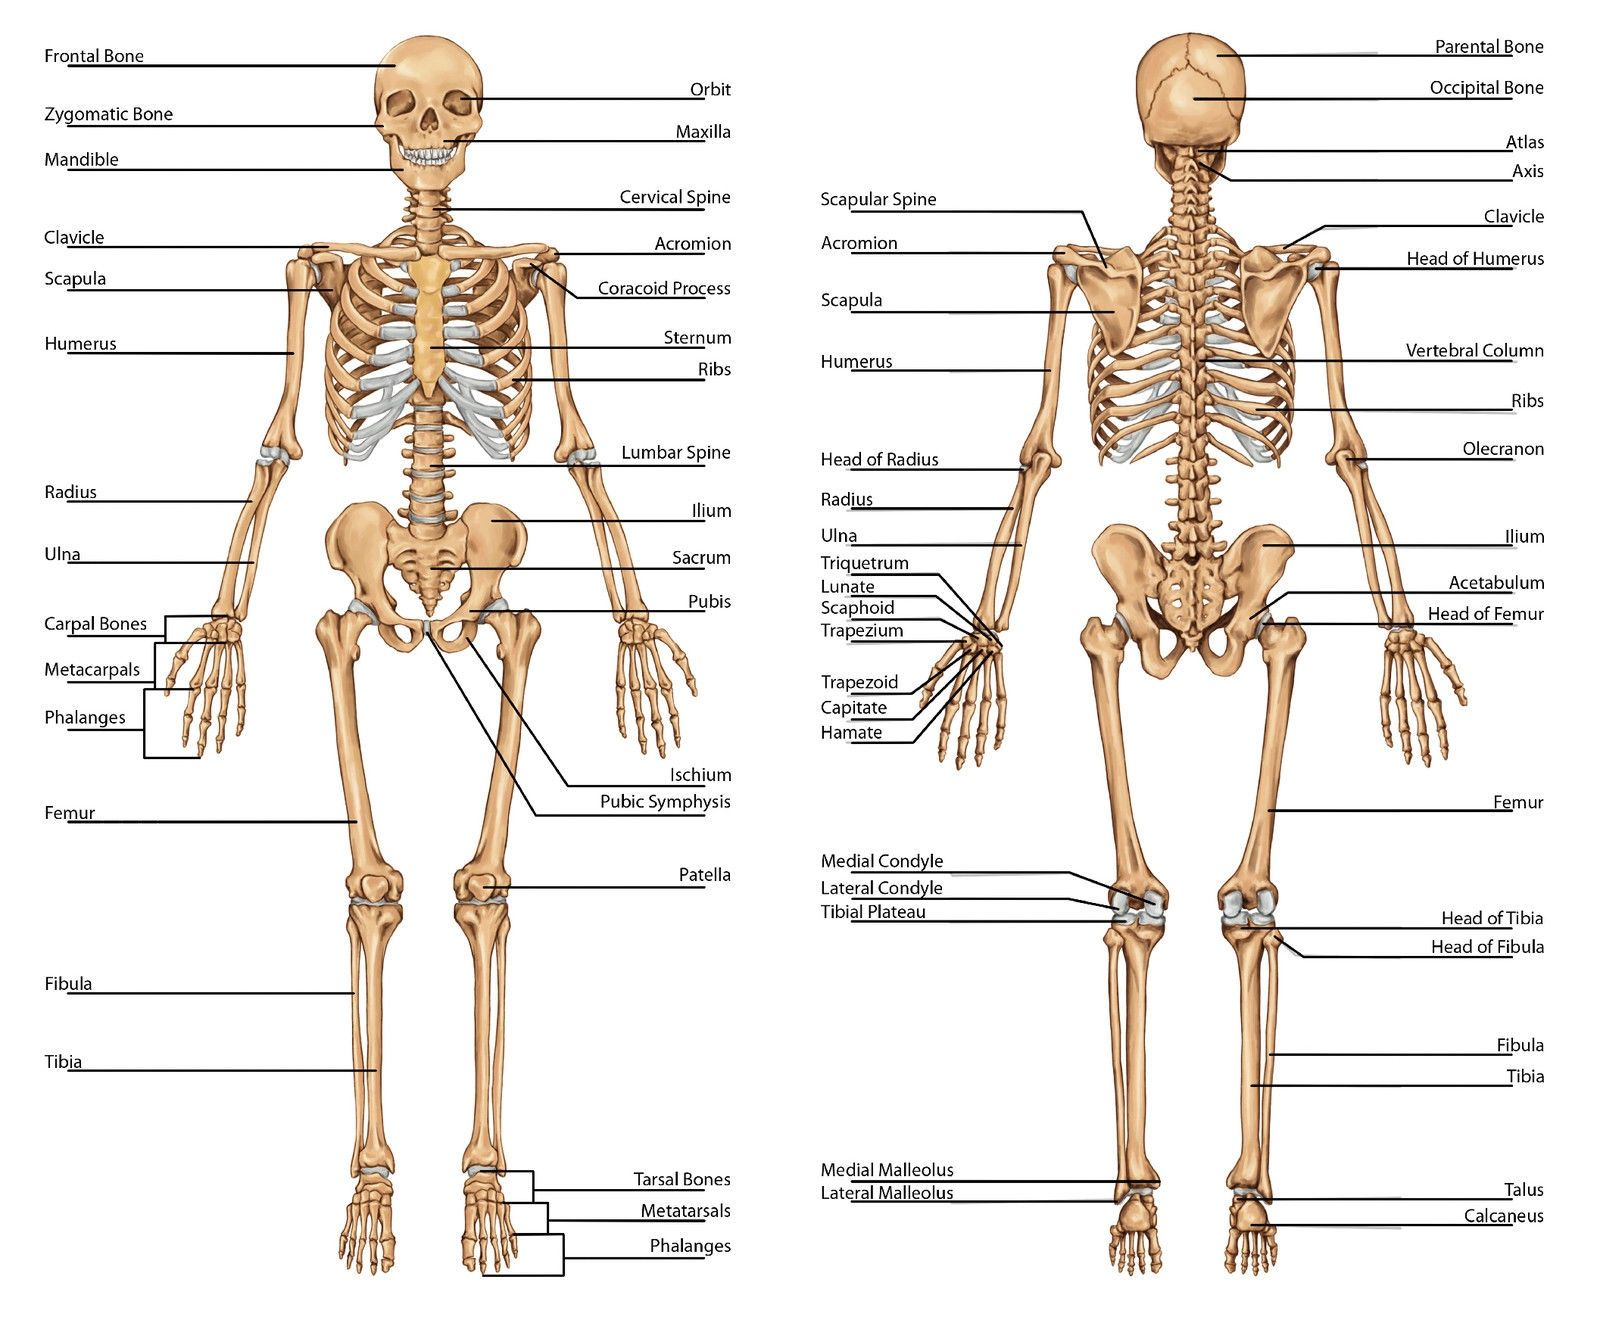 Human Anatomy Bones Diagram Anatomy Of Bones In Human Body